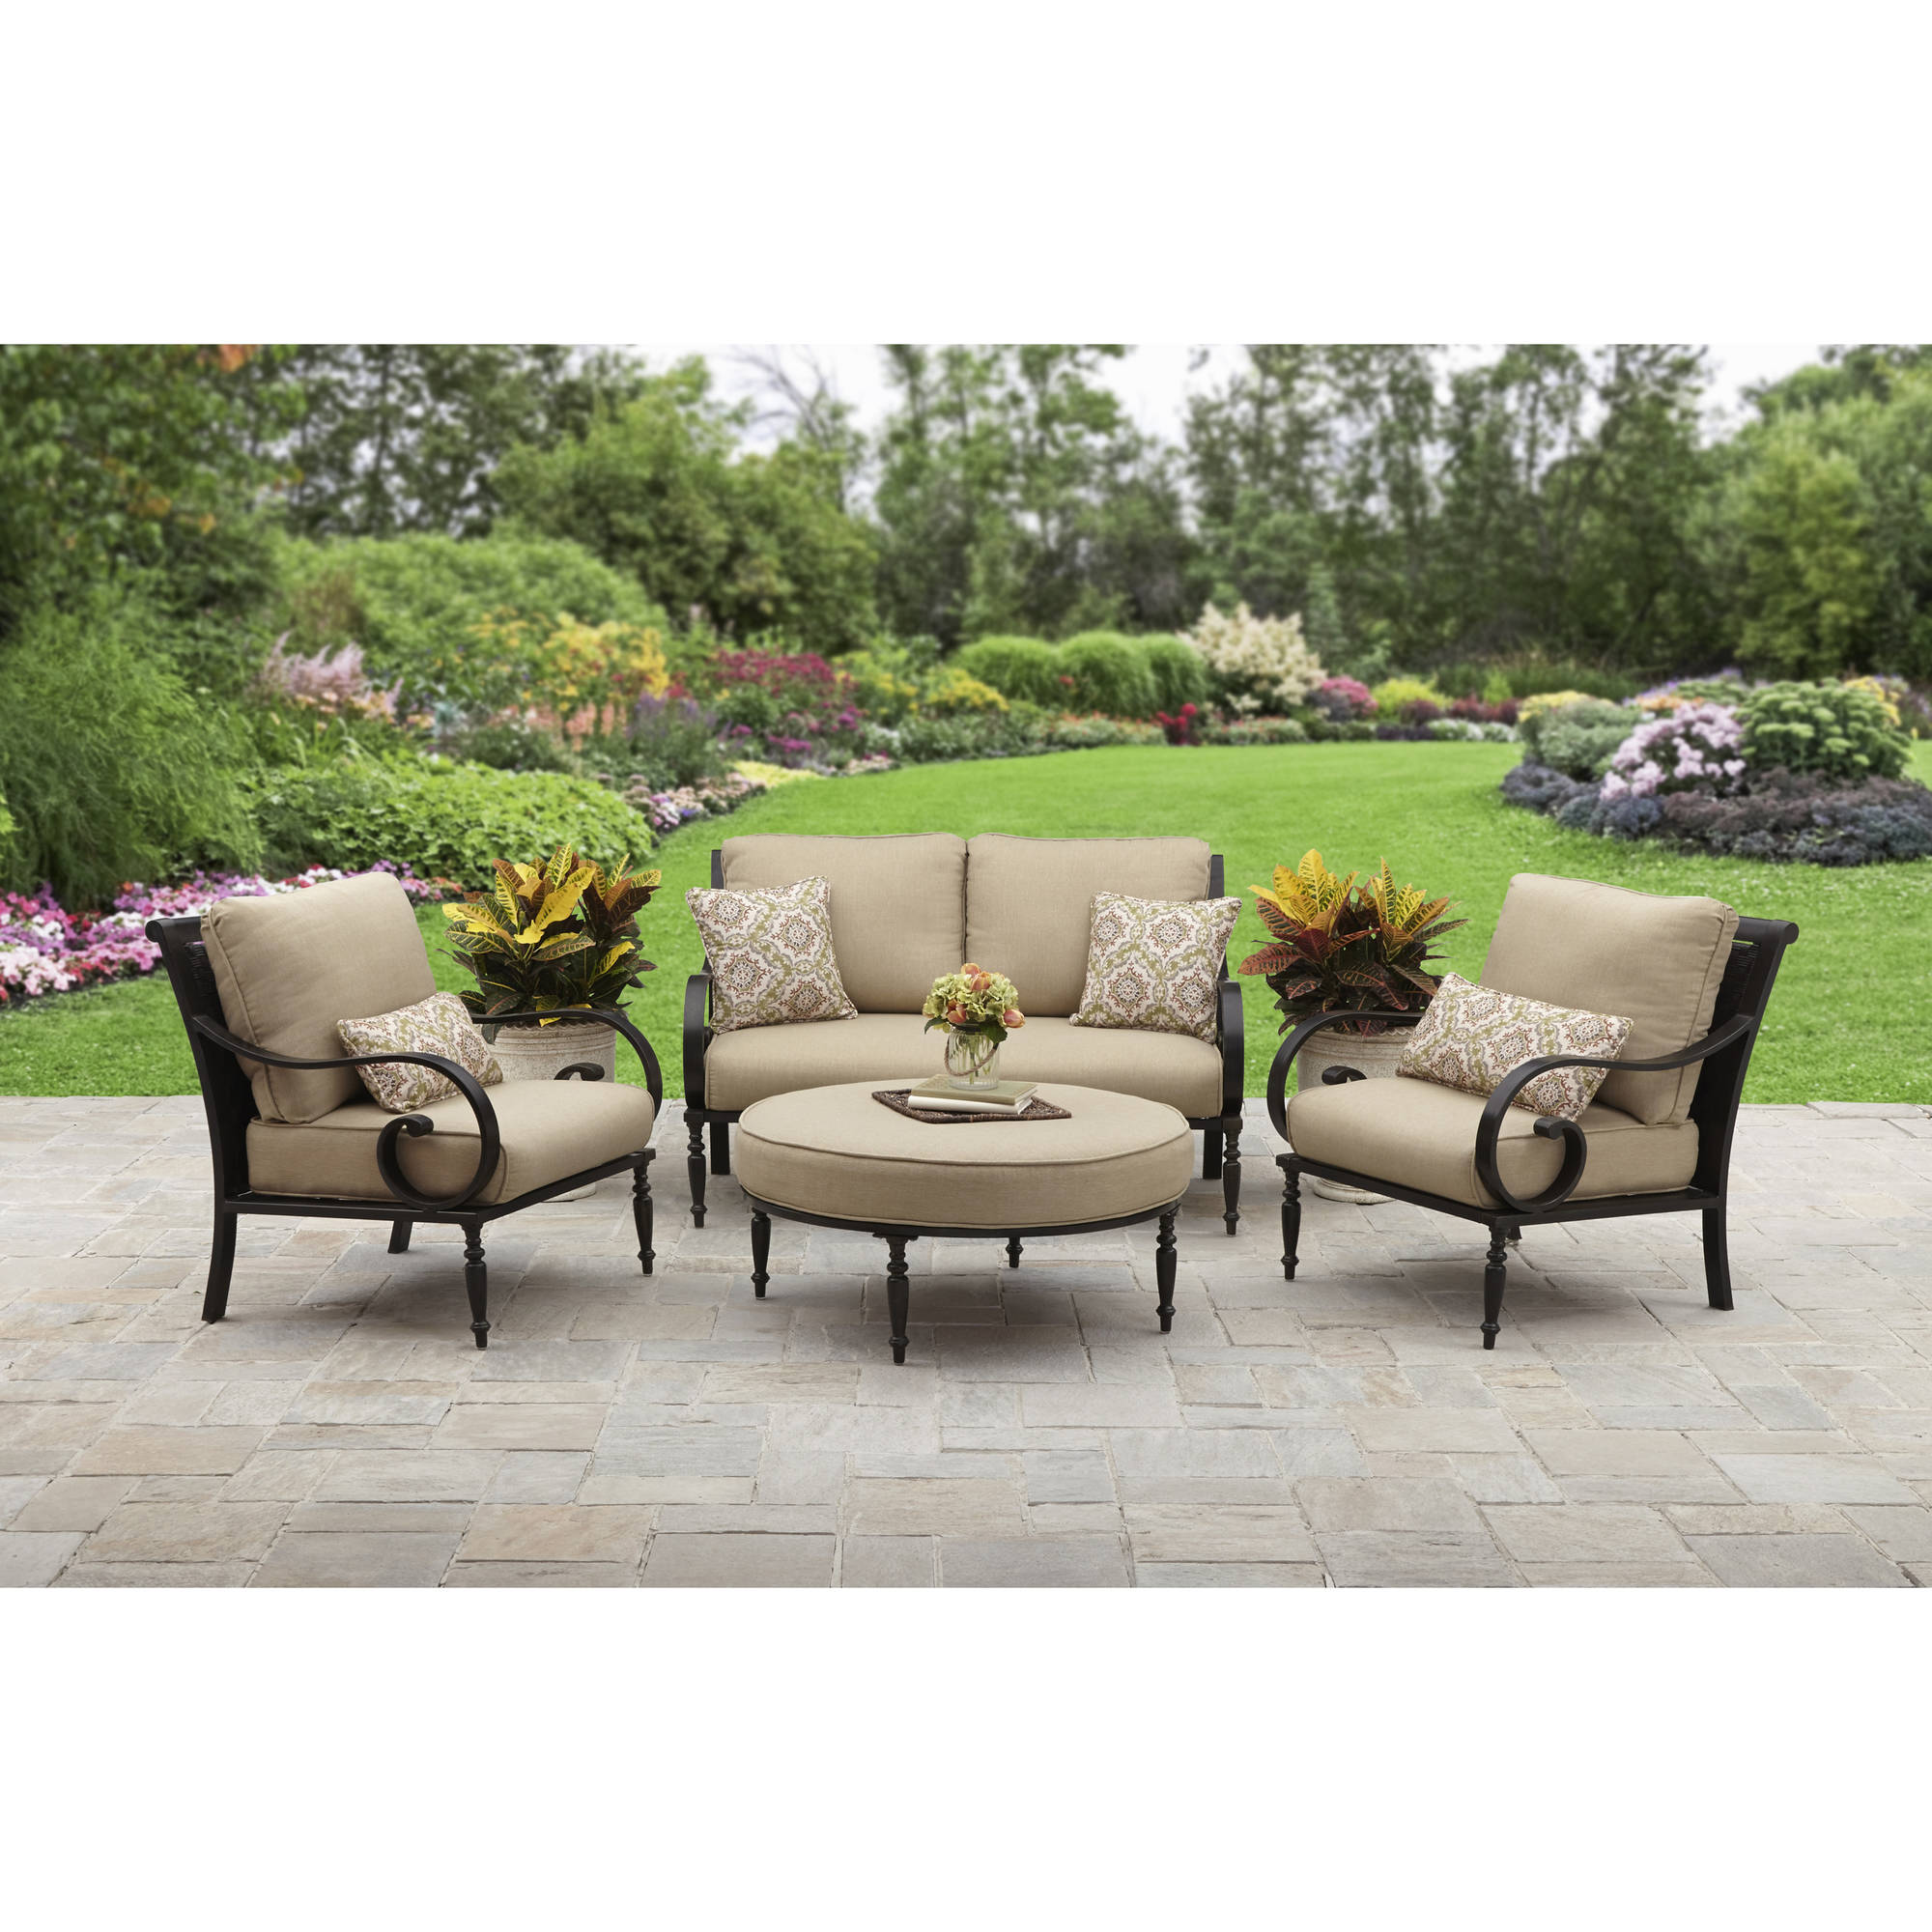 Superb Better Homes And Gardens Englewood Heights II Aluminum 4 Piece Patio  Conversation Set, Seats